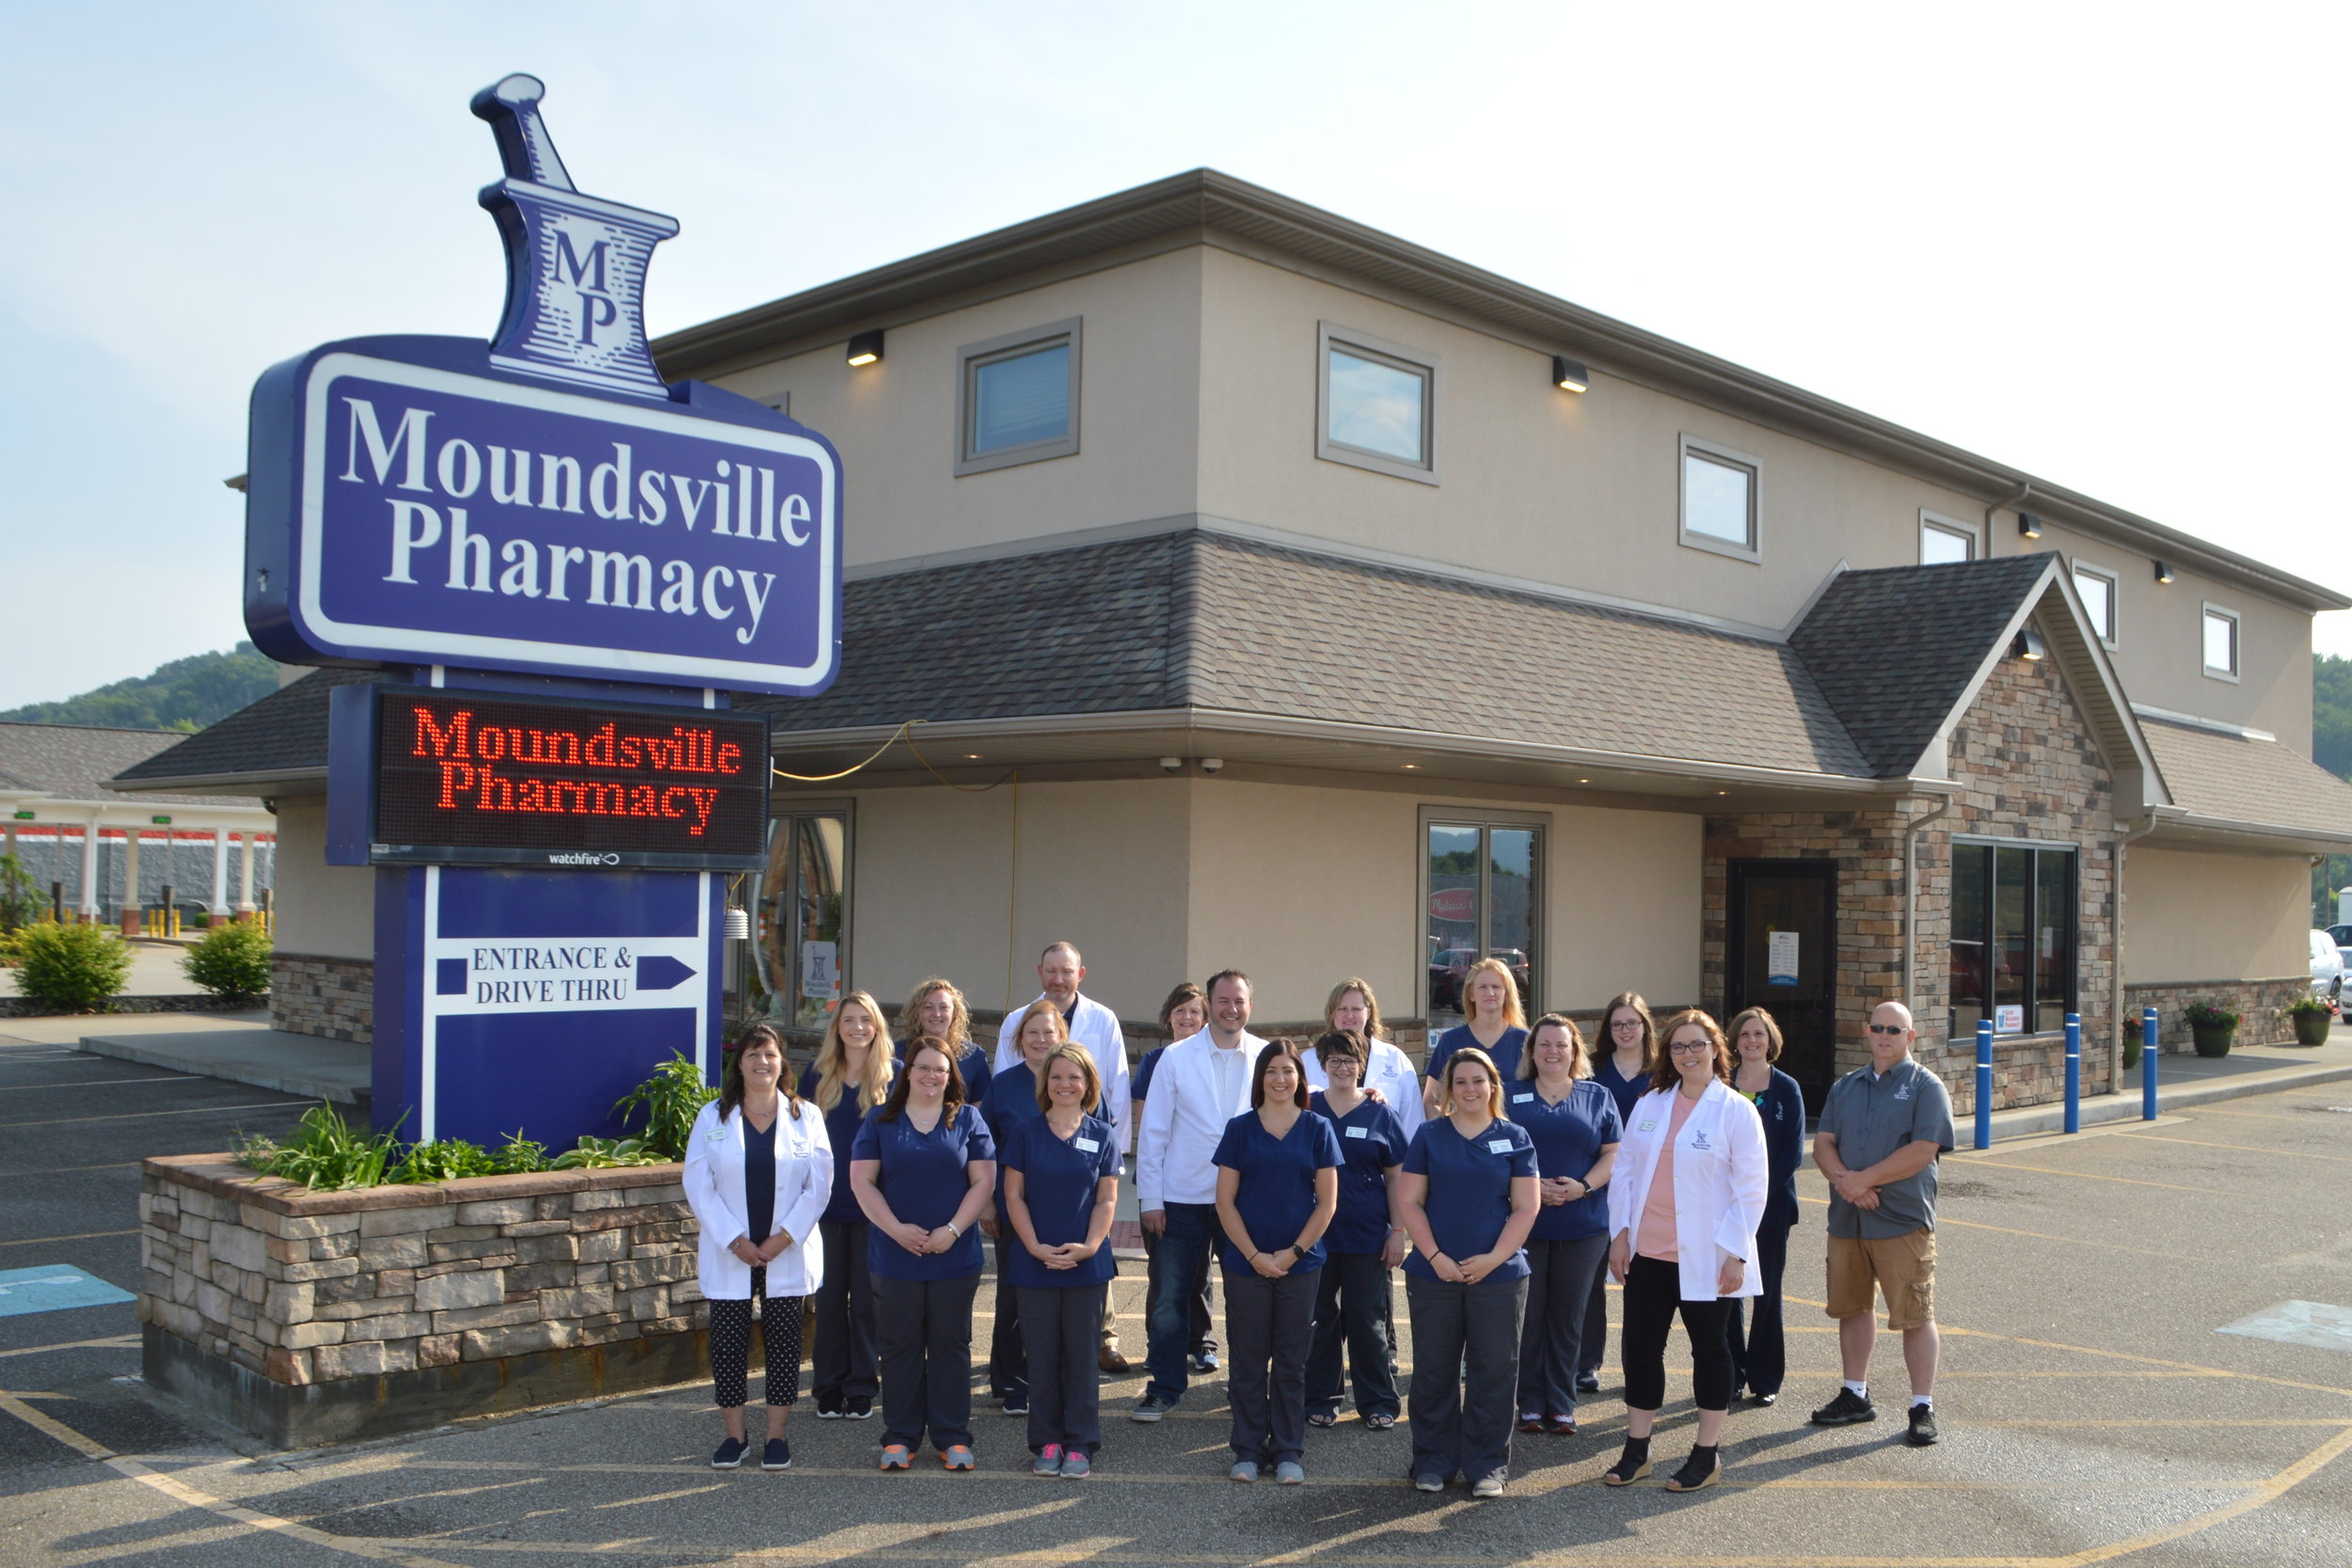 Moundsville Pharmacy team on May 28th, 2019